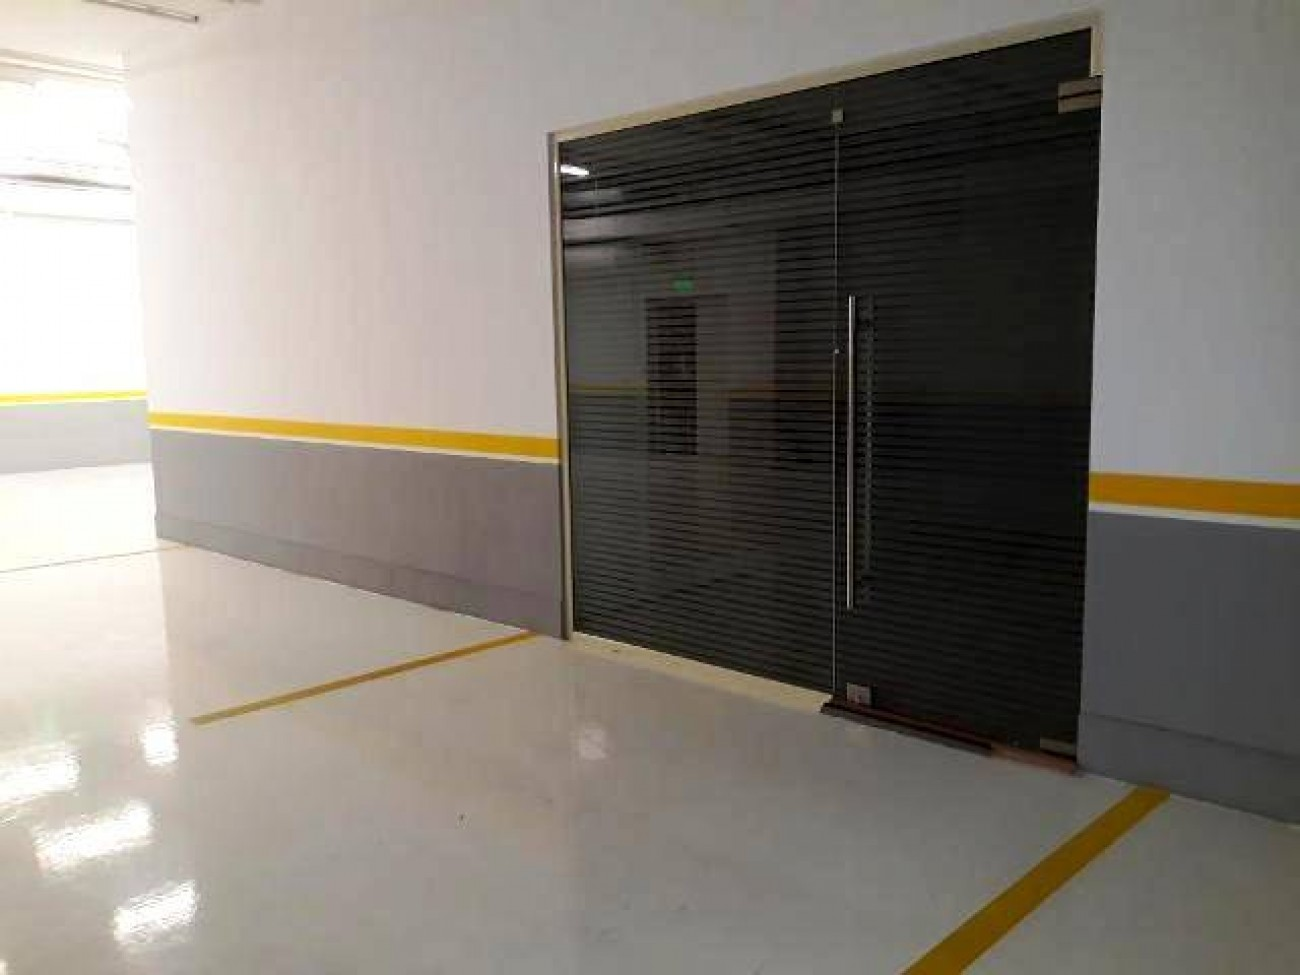 for Rent in Central & Southern Suburbs, Prefecture of Attica